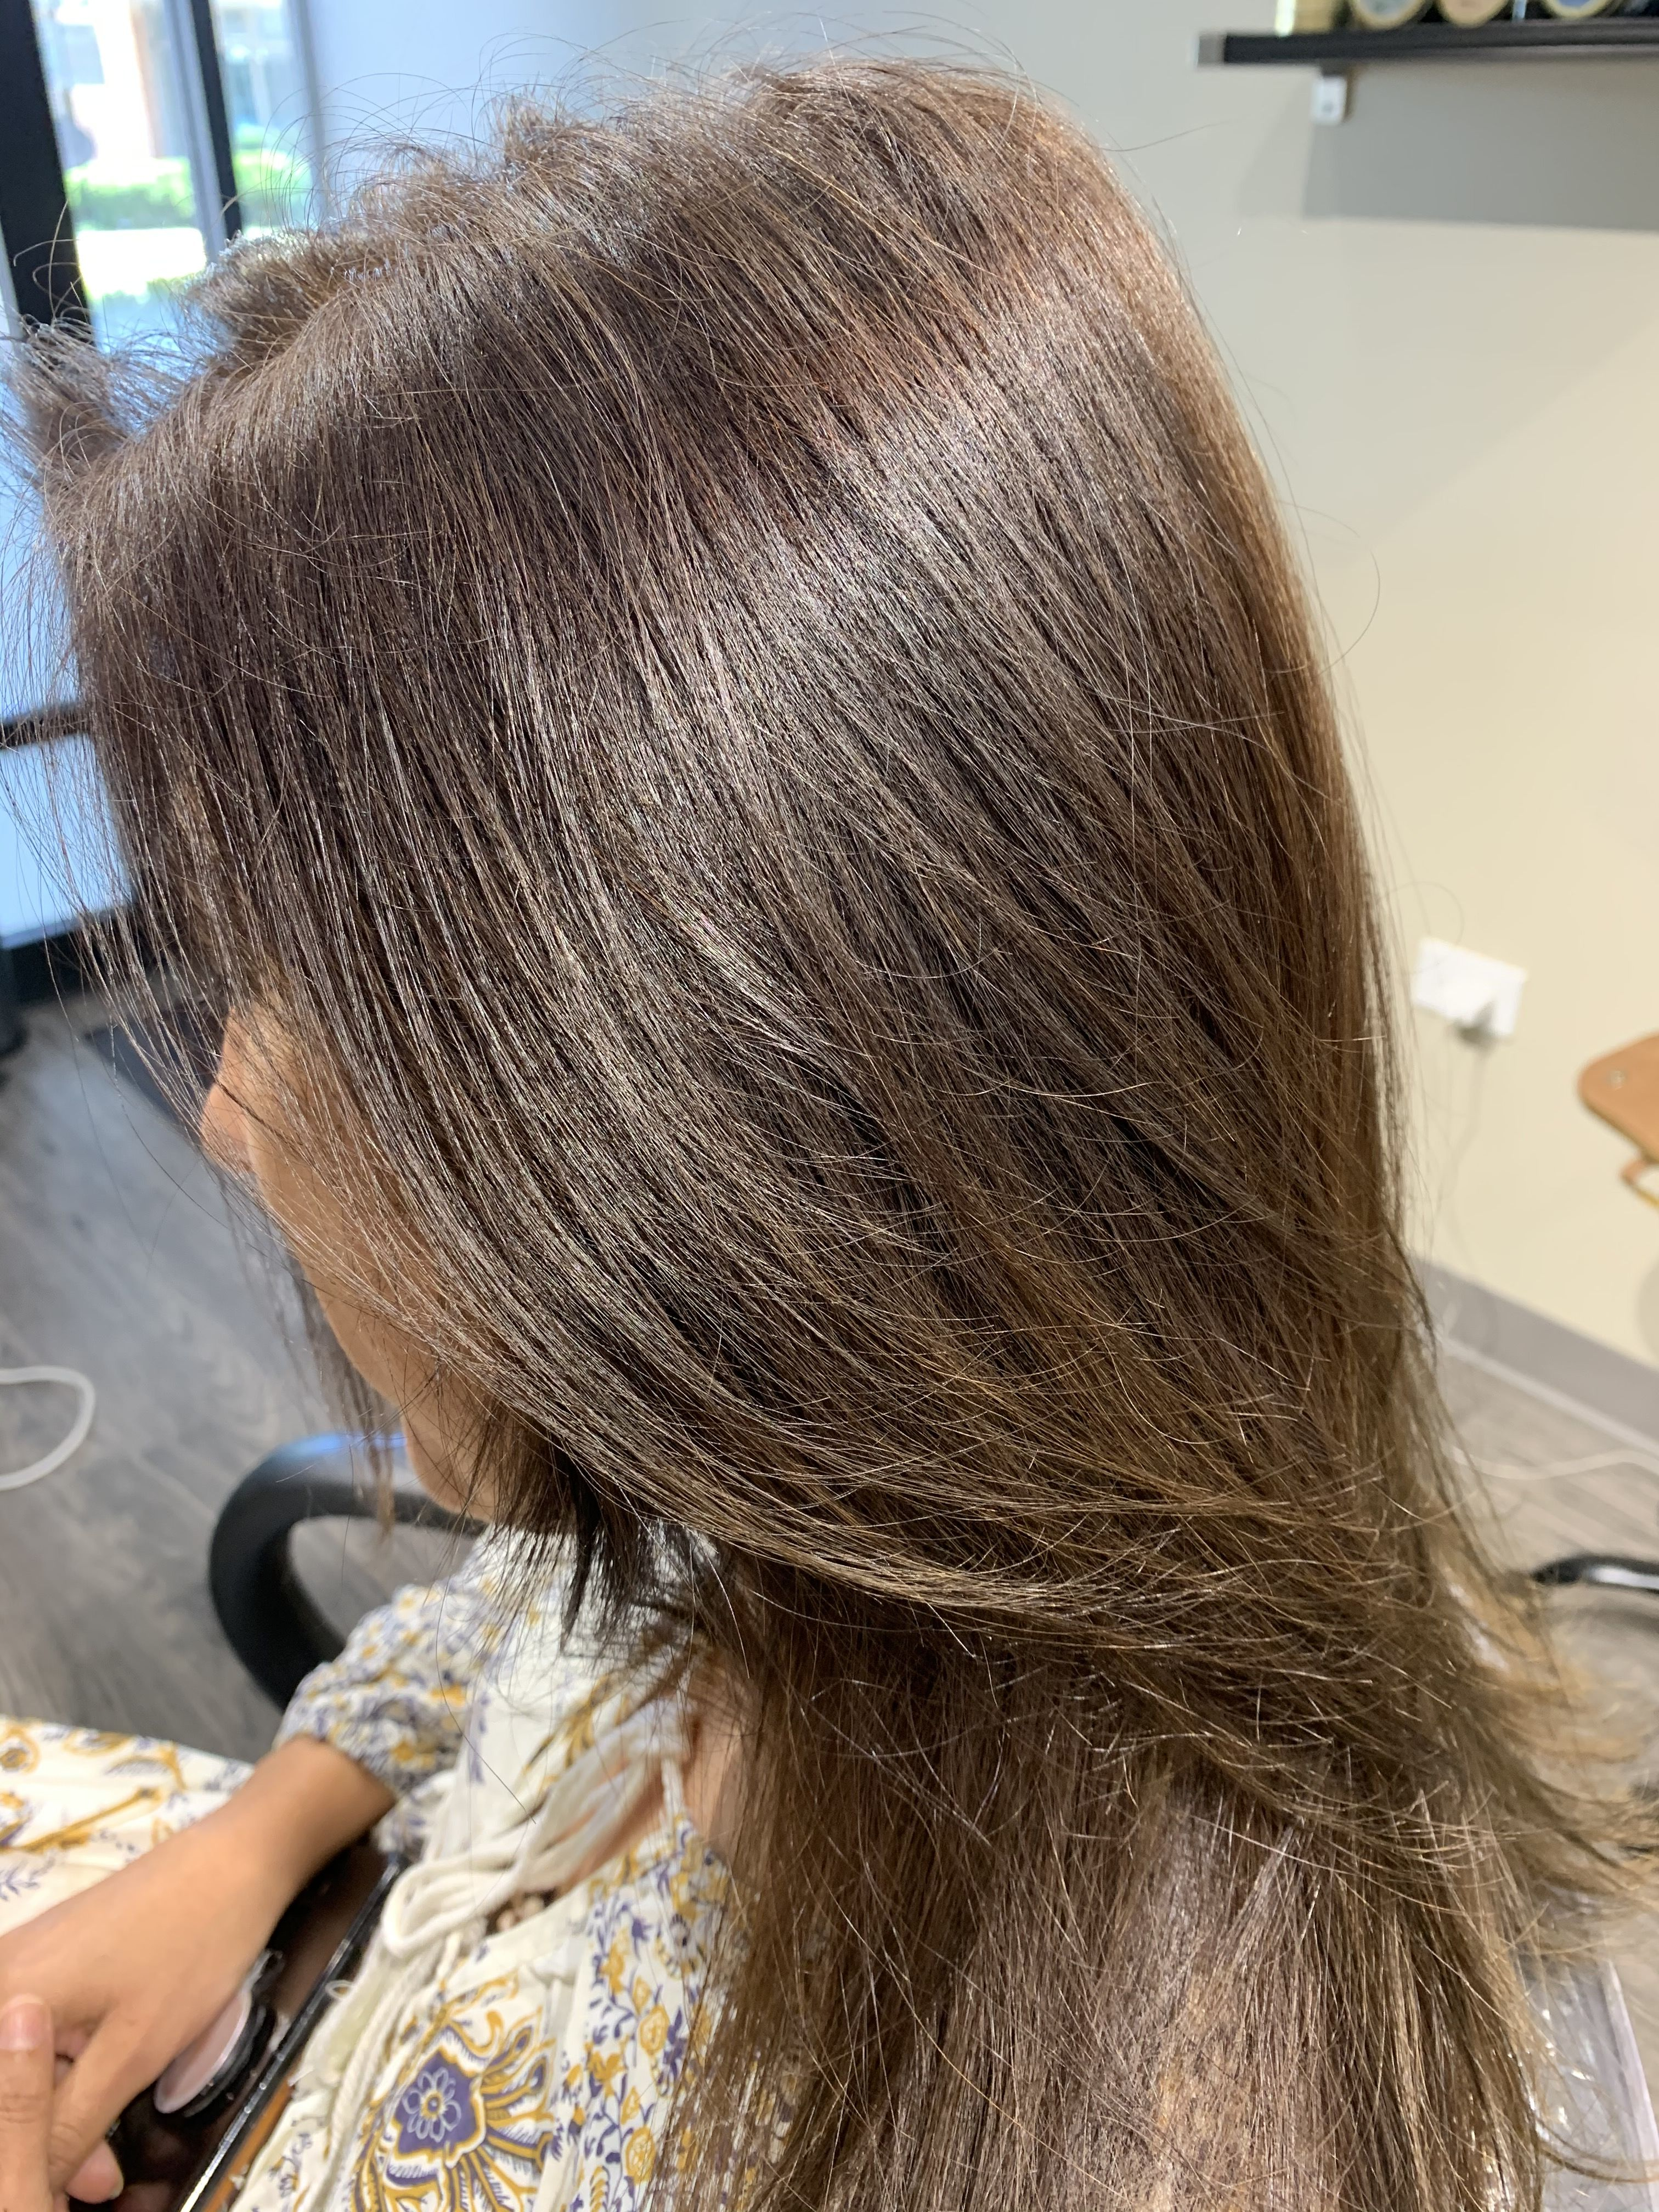 Pin By Evelyn Neary On Marissa S Hair Studio In 2020 Long Hair Styles Hair Styles Hair Studio